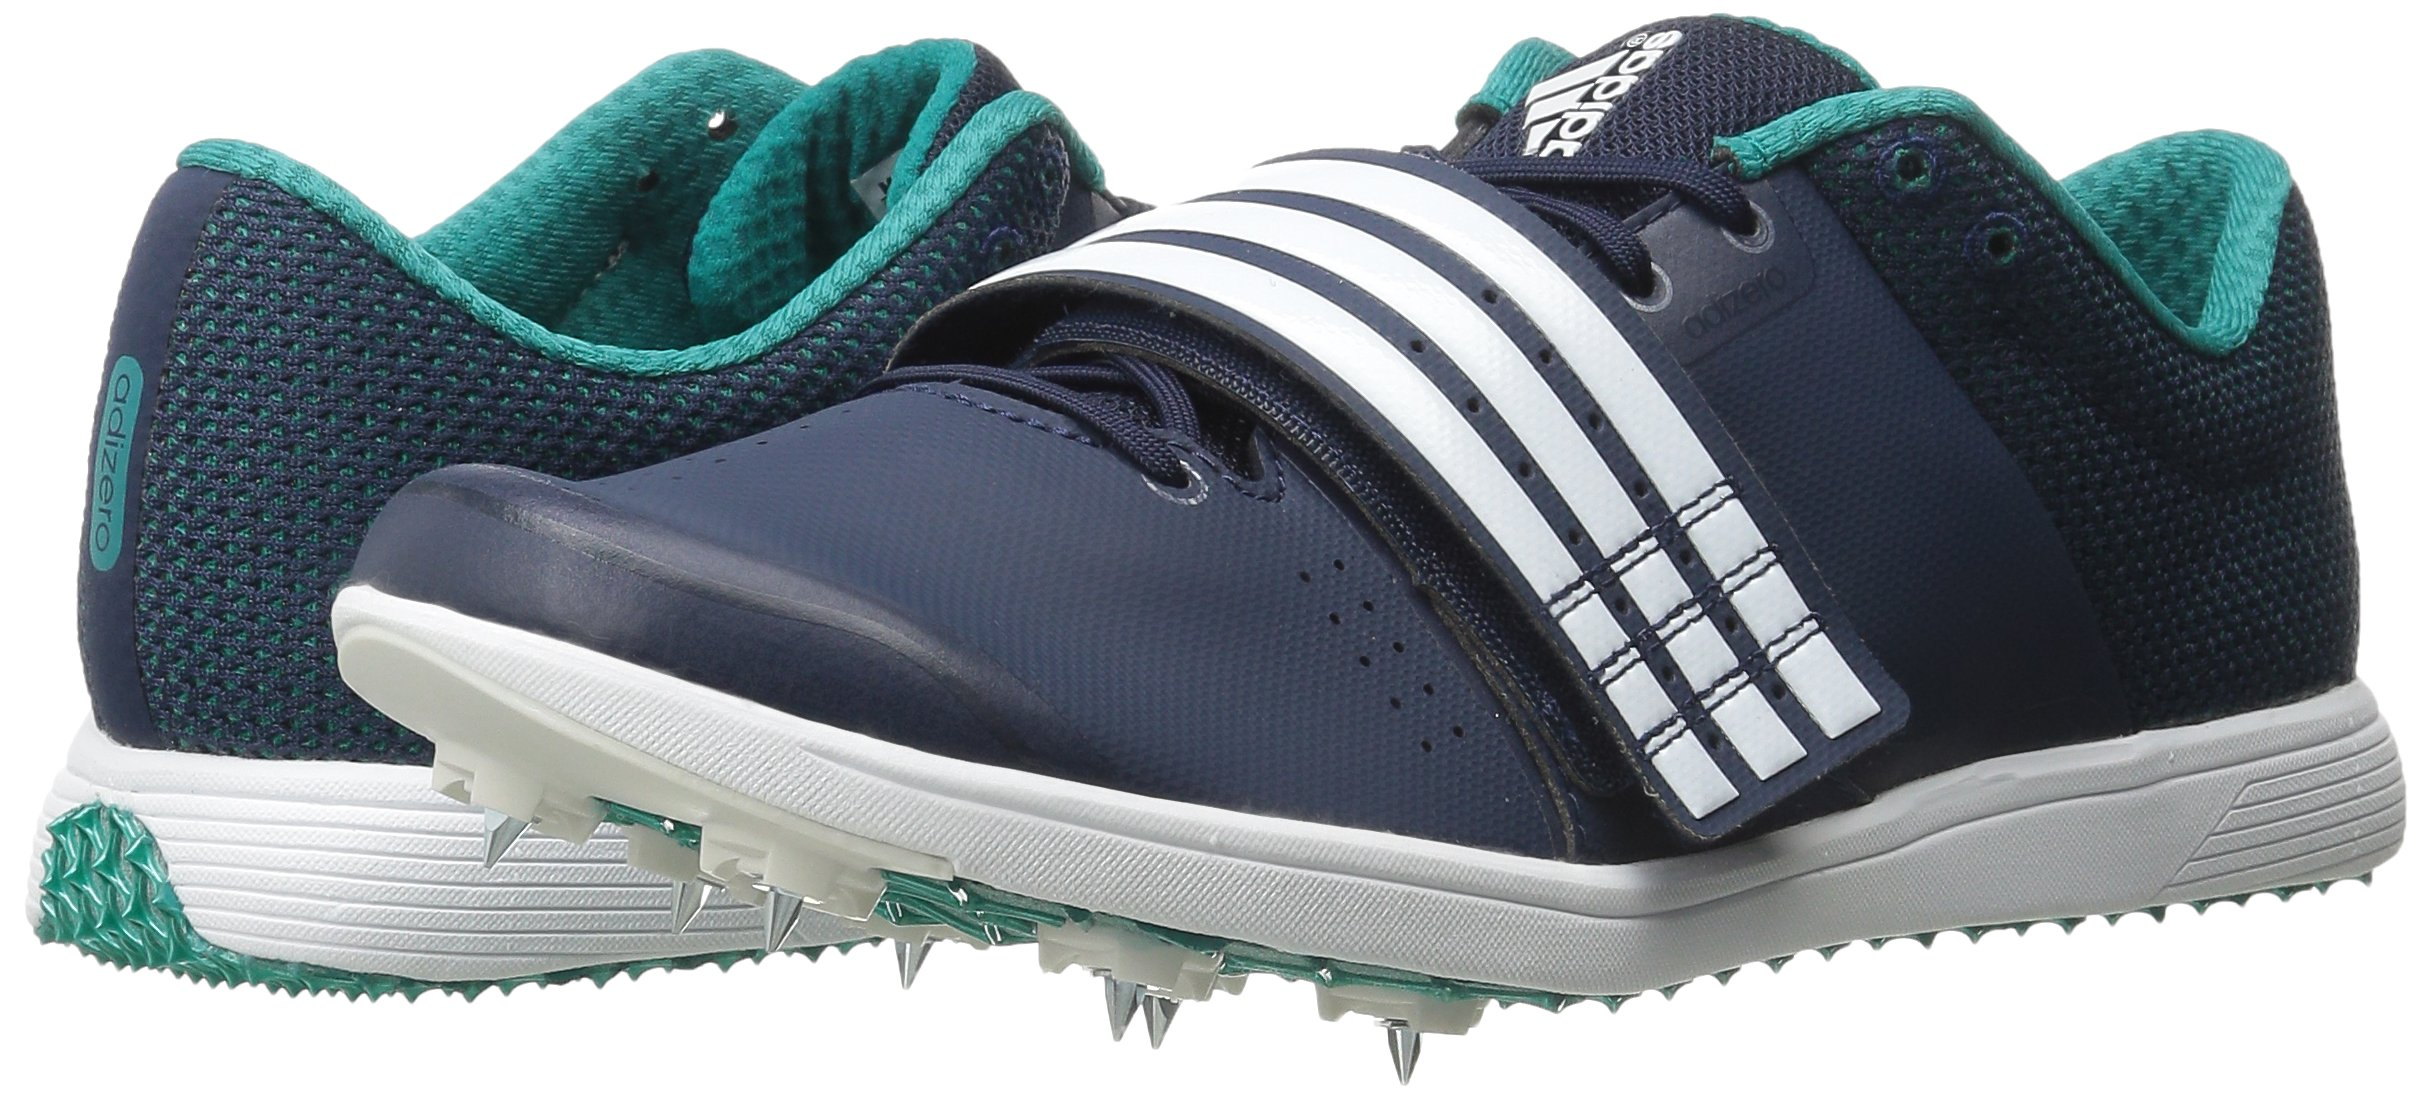 adidas Performance Women's Adizero TJ/PV Running Shoe with Spikes,Collegiate Navy/White/Green,14 M US by adidas (Image #6)